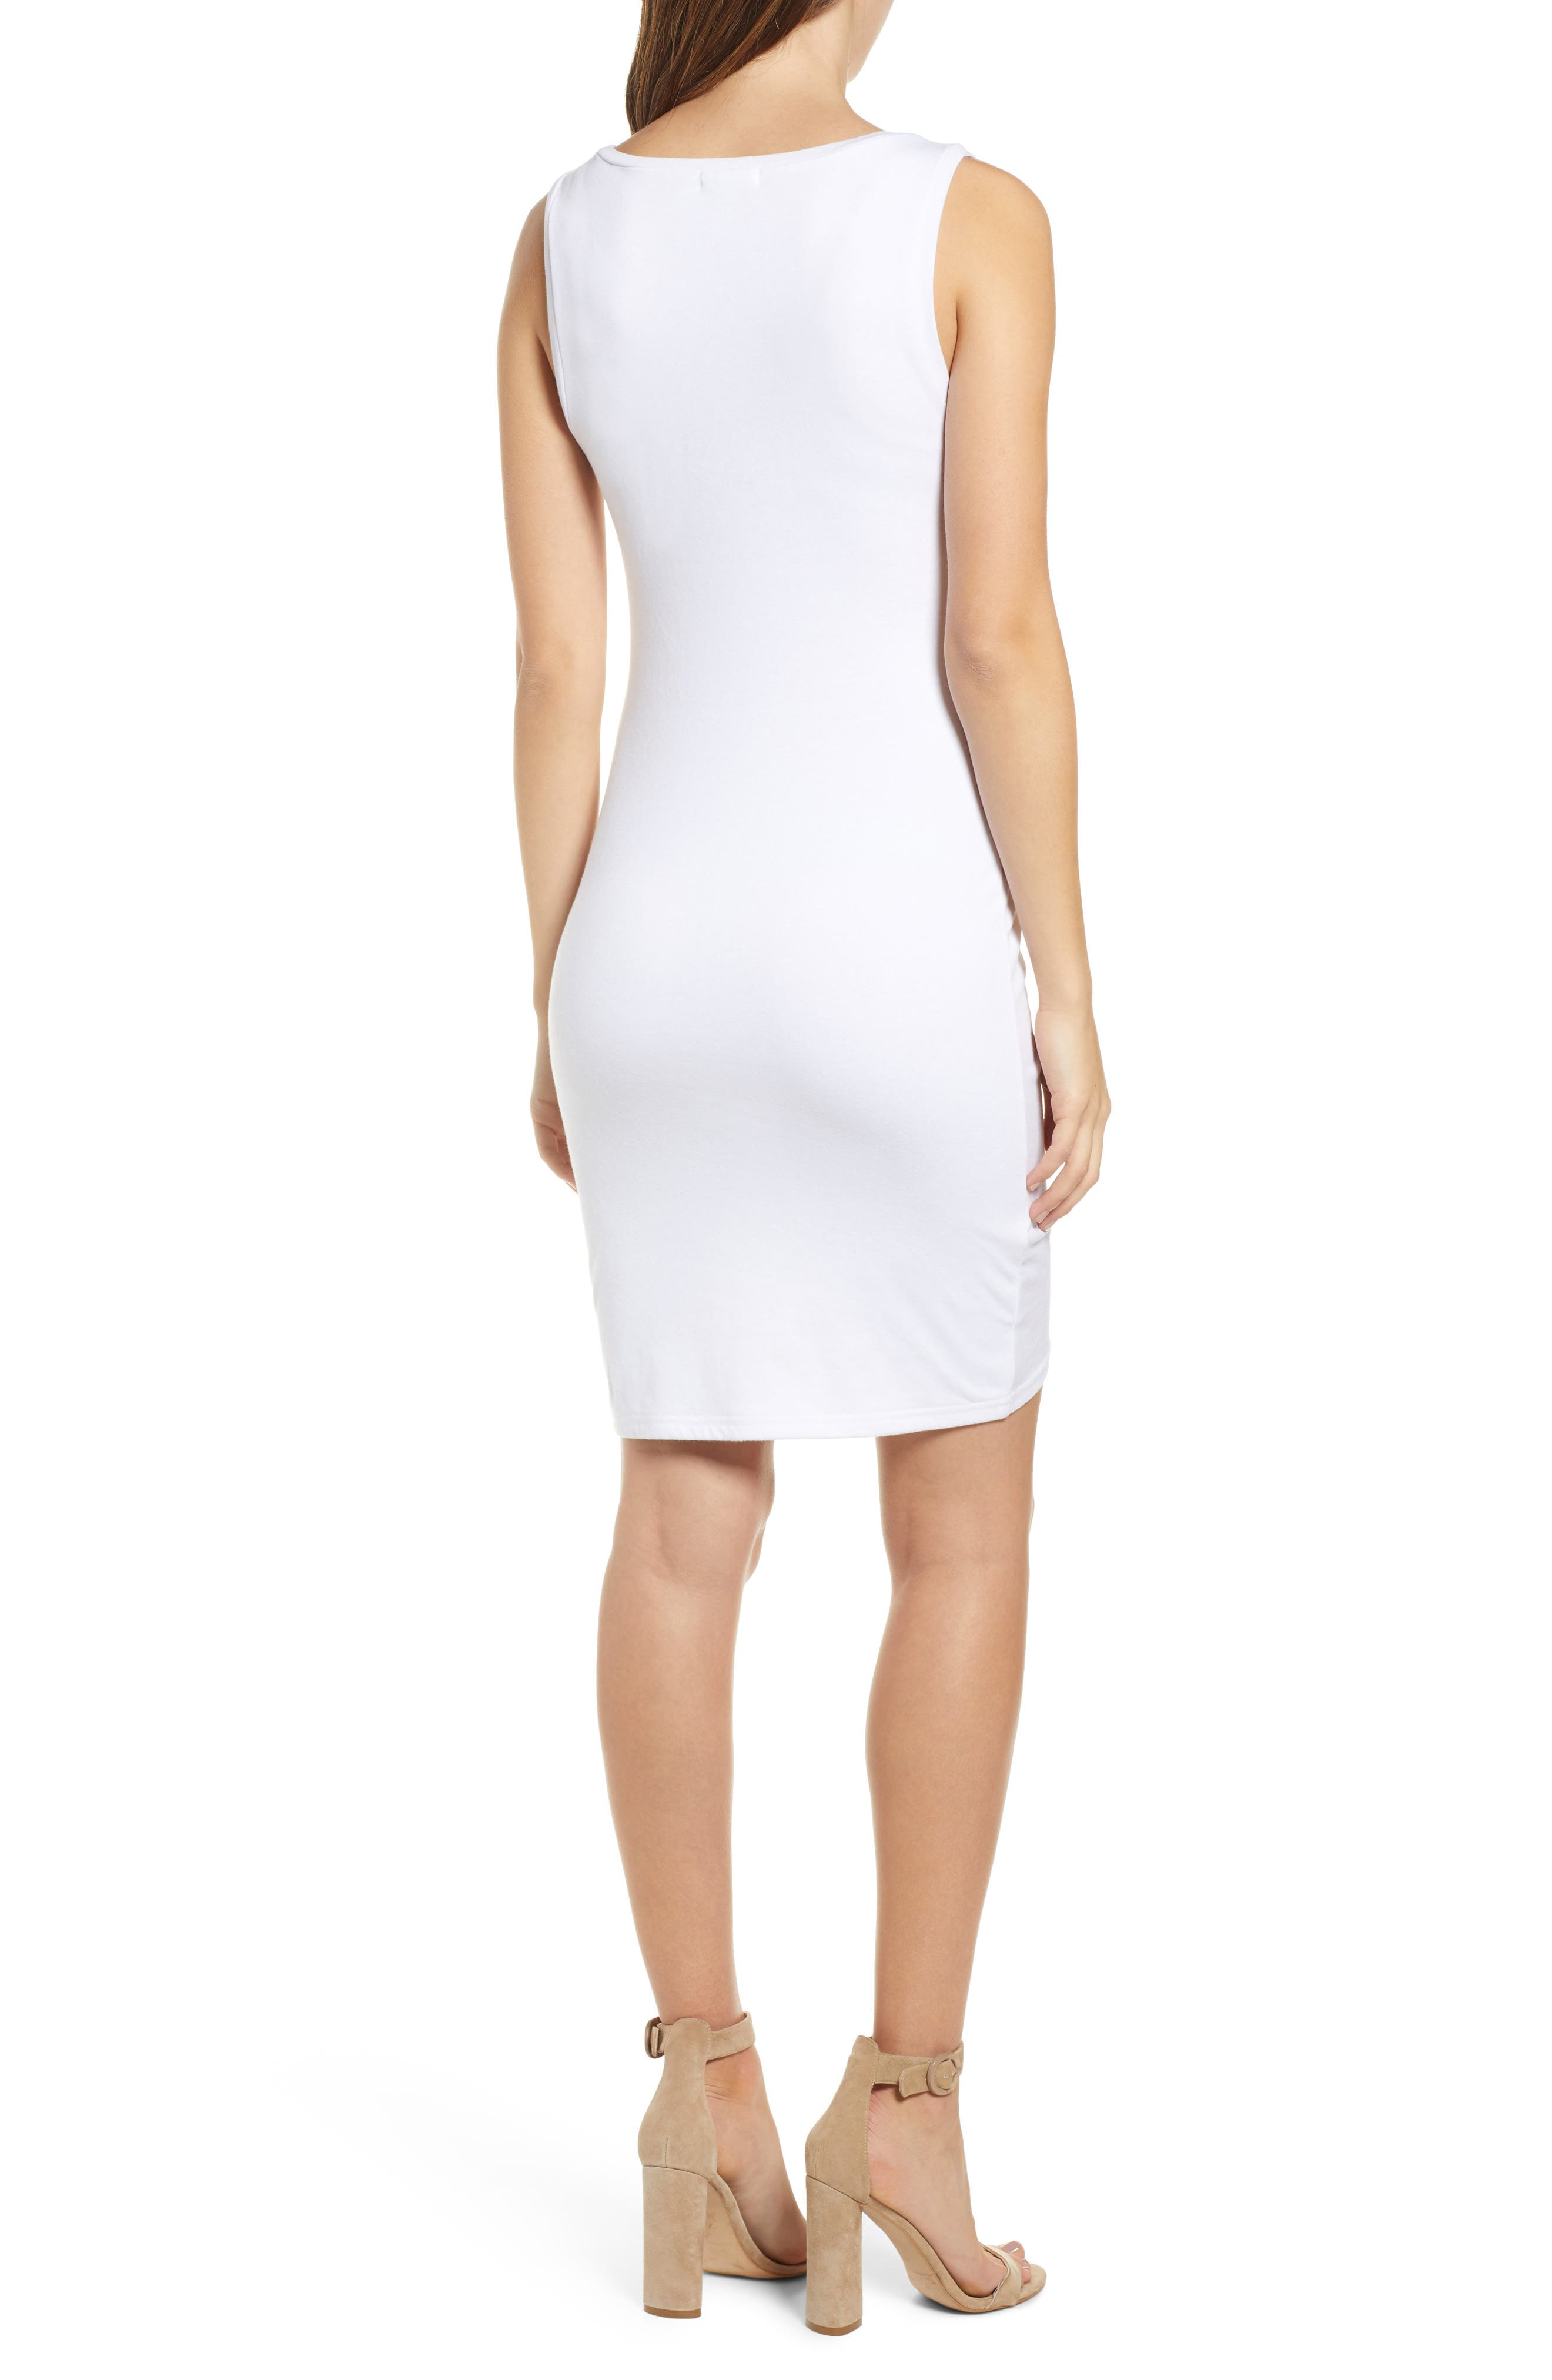 7e5bfd6ed71 Women s White Dresses